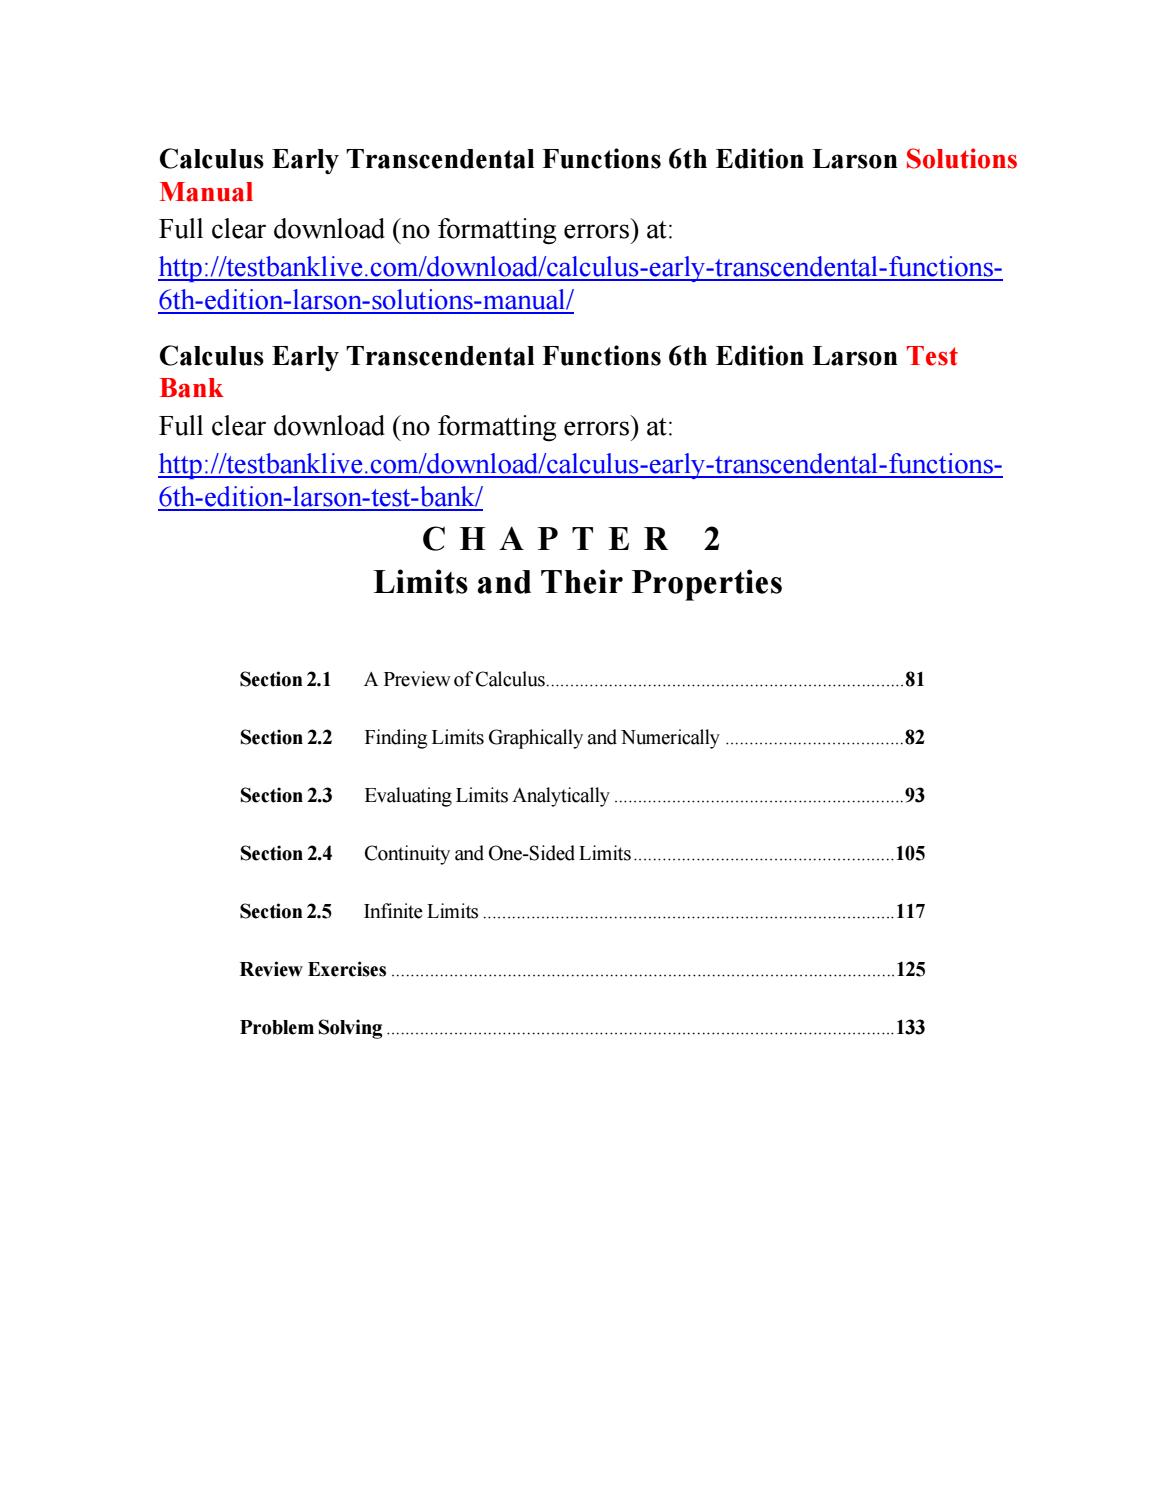 Calculus Early Transcendental Functions 6th Edition Pdf